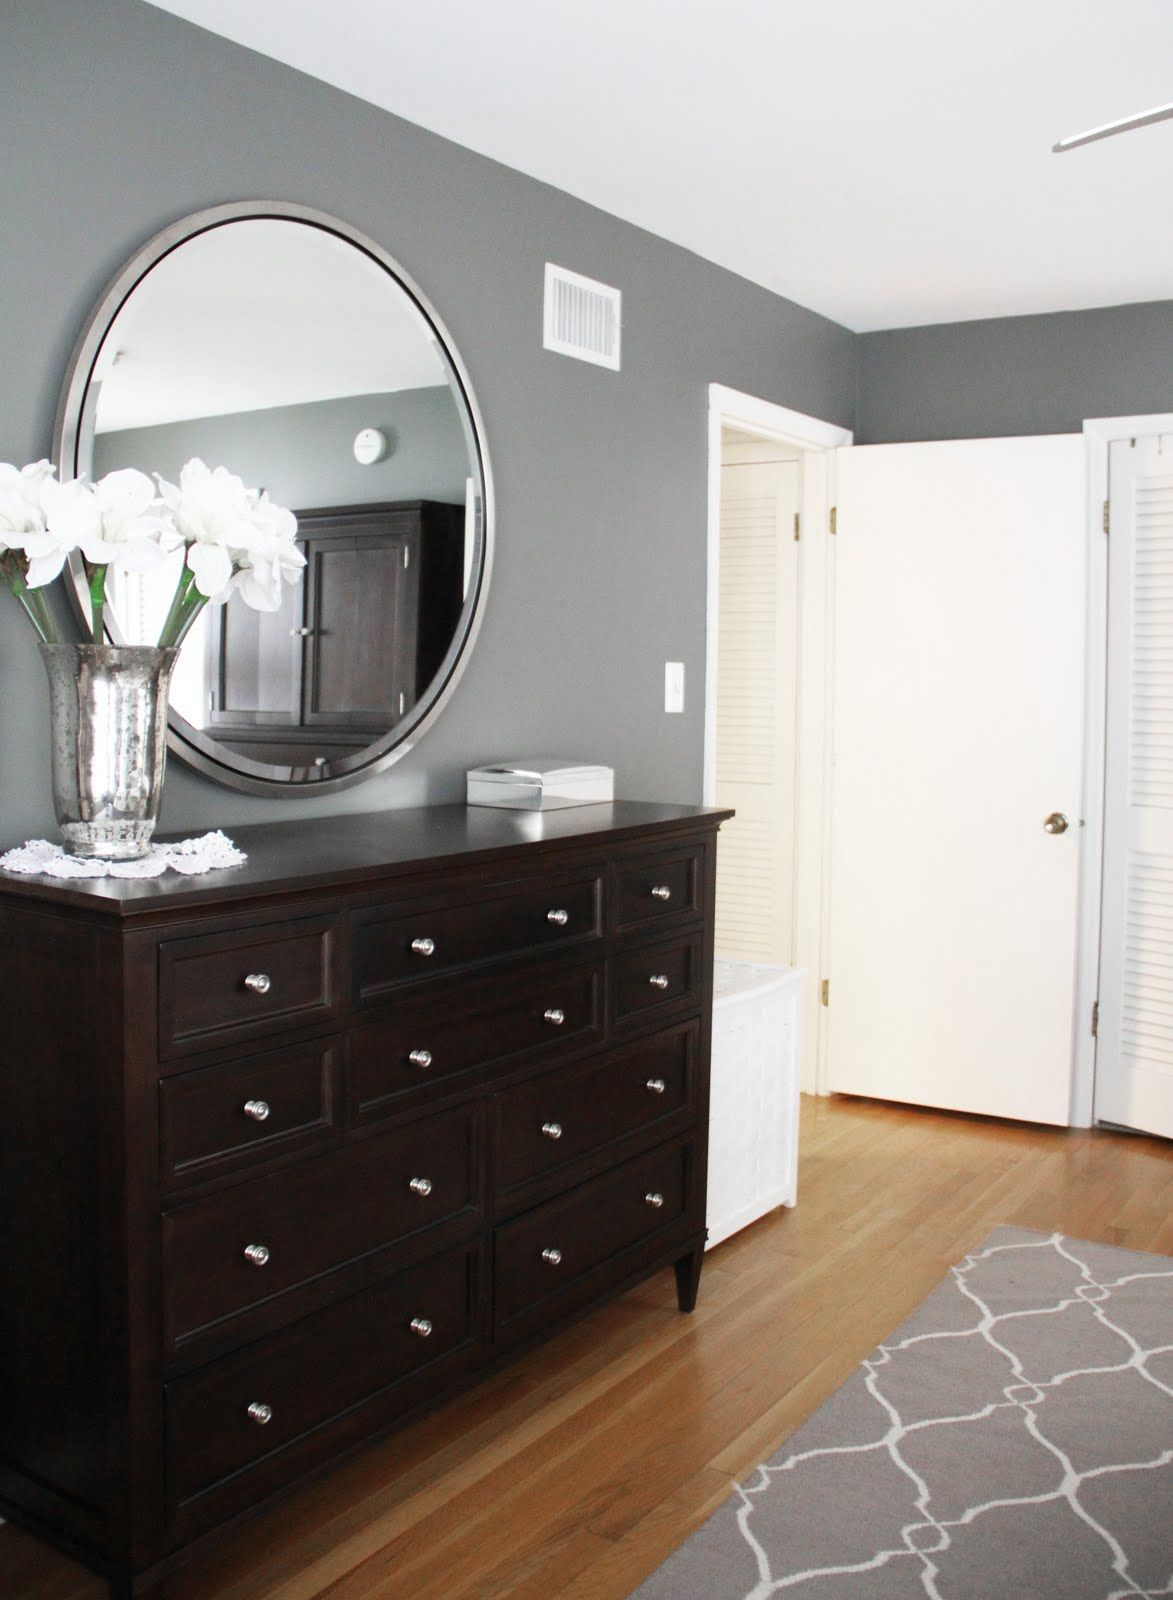 20 Modern Solid Dark Brown Wood Doors Ideas: Master Bedroom Makeover - Before & After